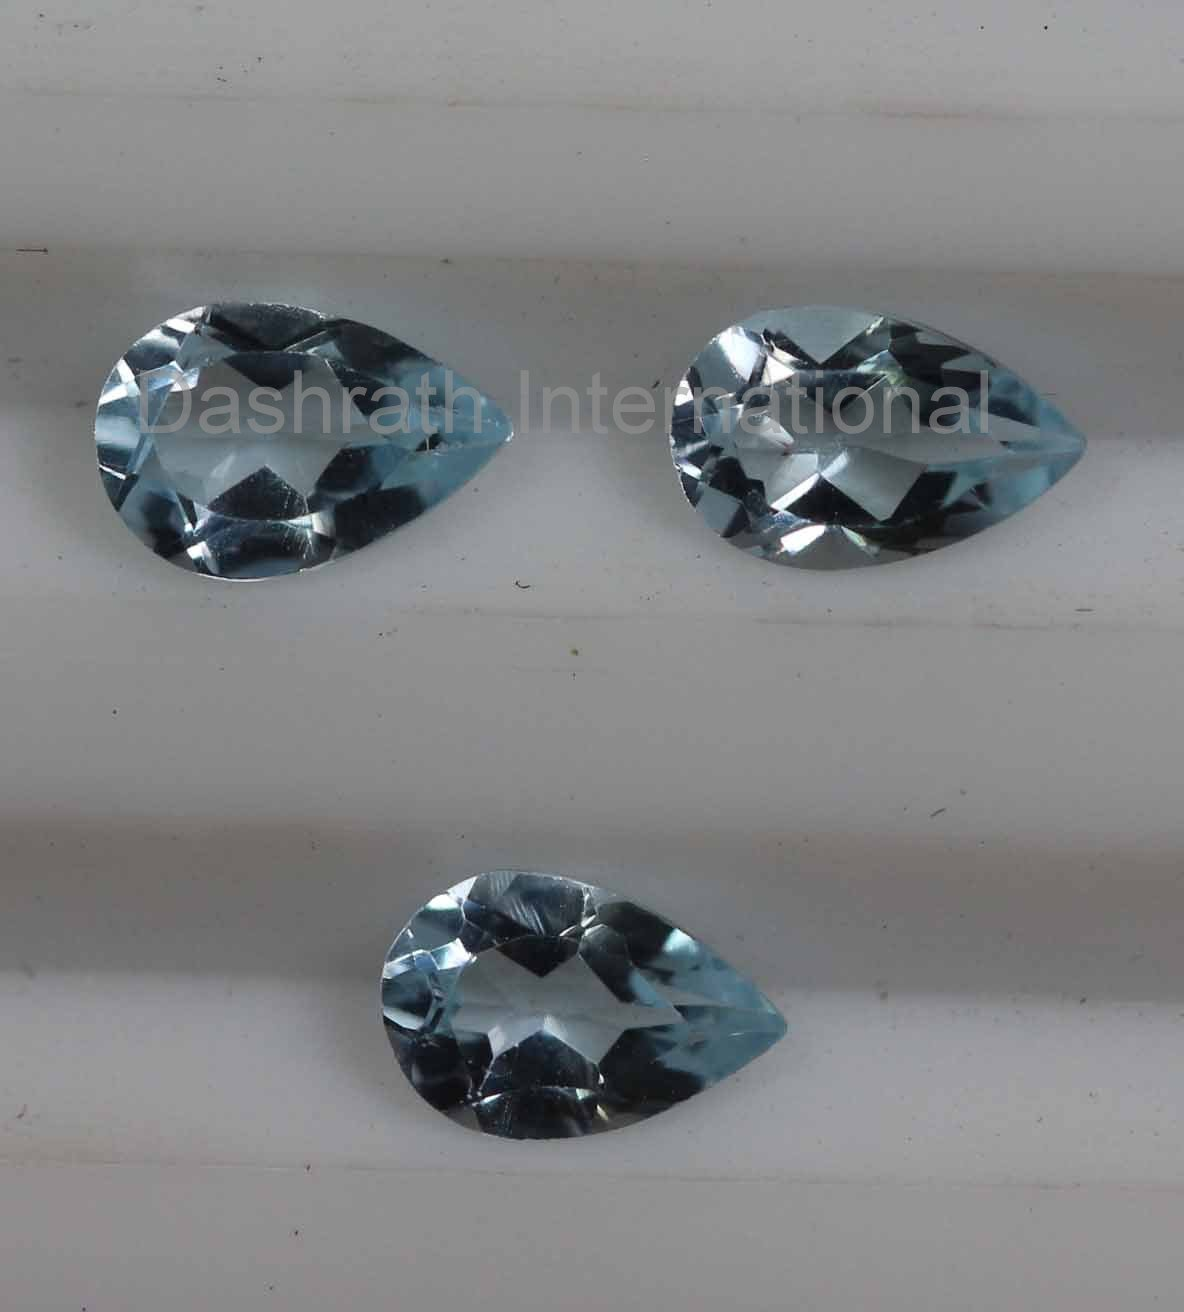 7x10mm  Natural Sky Blue Topaz Faceted Cut Pear 50 Pieces Lot  Top Quality Loose Gemstone